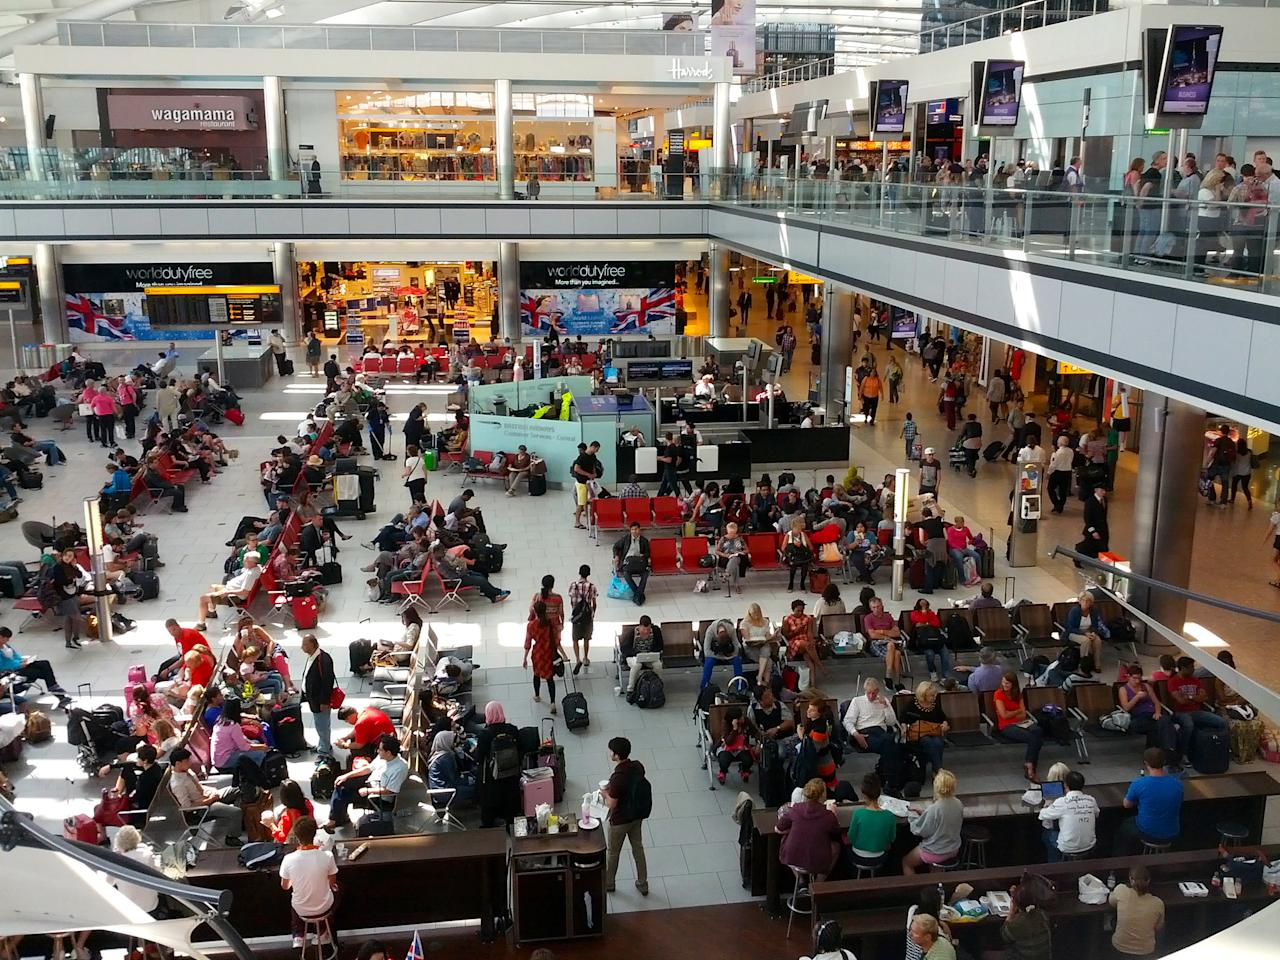 <p>No. 9: London Heathrow Airport<br /> Fourteen miles west of central London, Heathrow is the third busiest airport in the world by passenger traffic. It spans 1,227 hectares, has six terminals and two runways that serve 80 different airlines. Over 201,000 passengers fly through this airport every day.<br /> (Antonio Zugaldia/Creative Commons) </p>